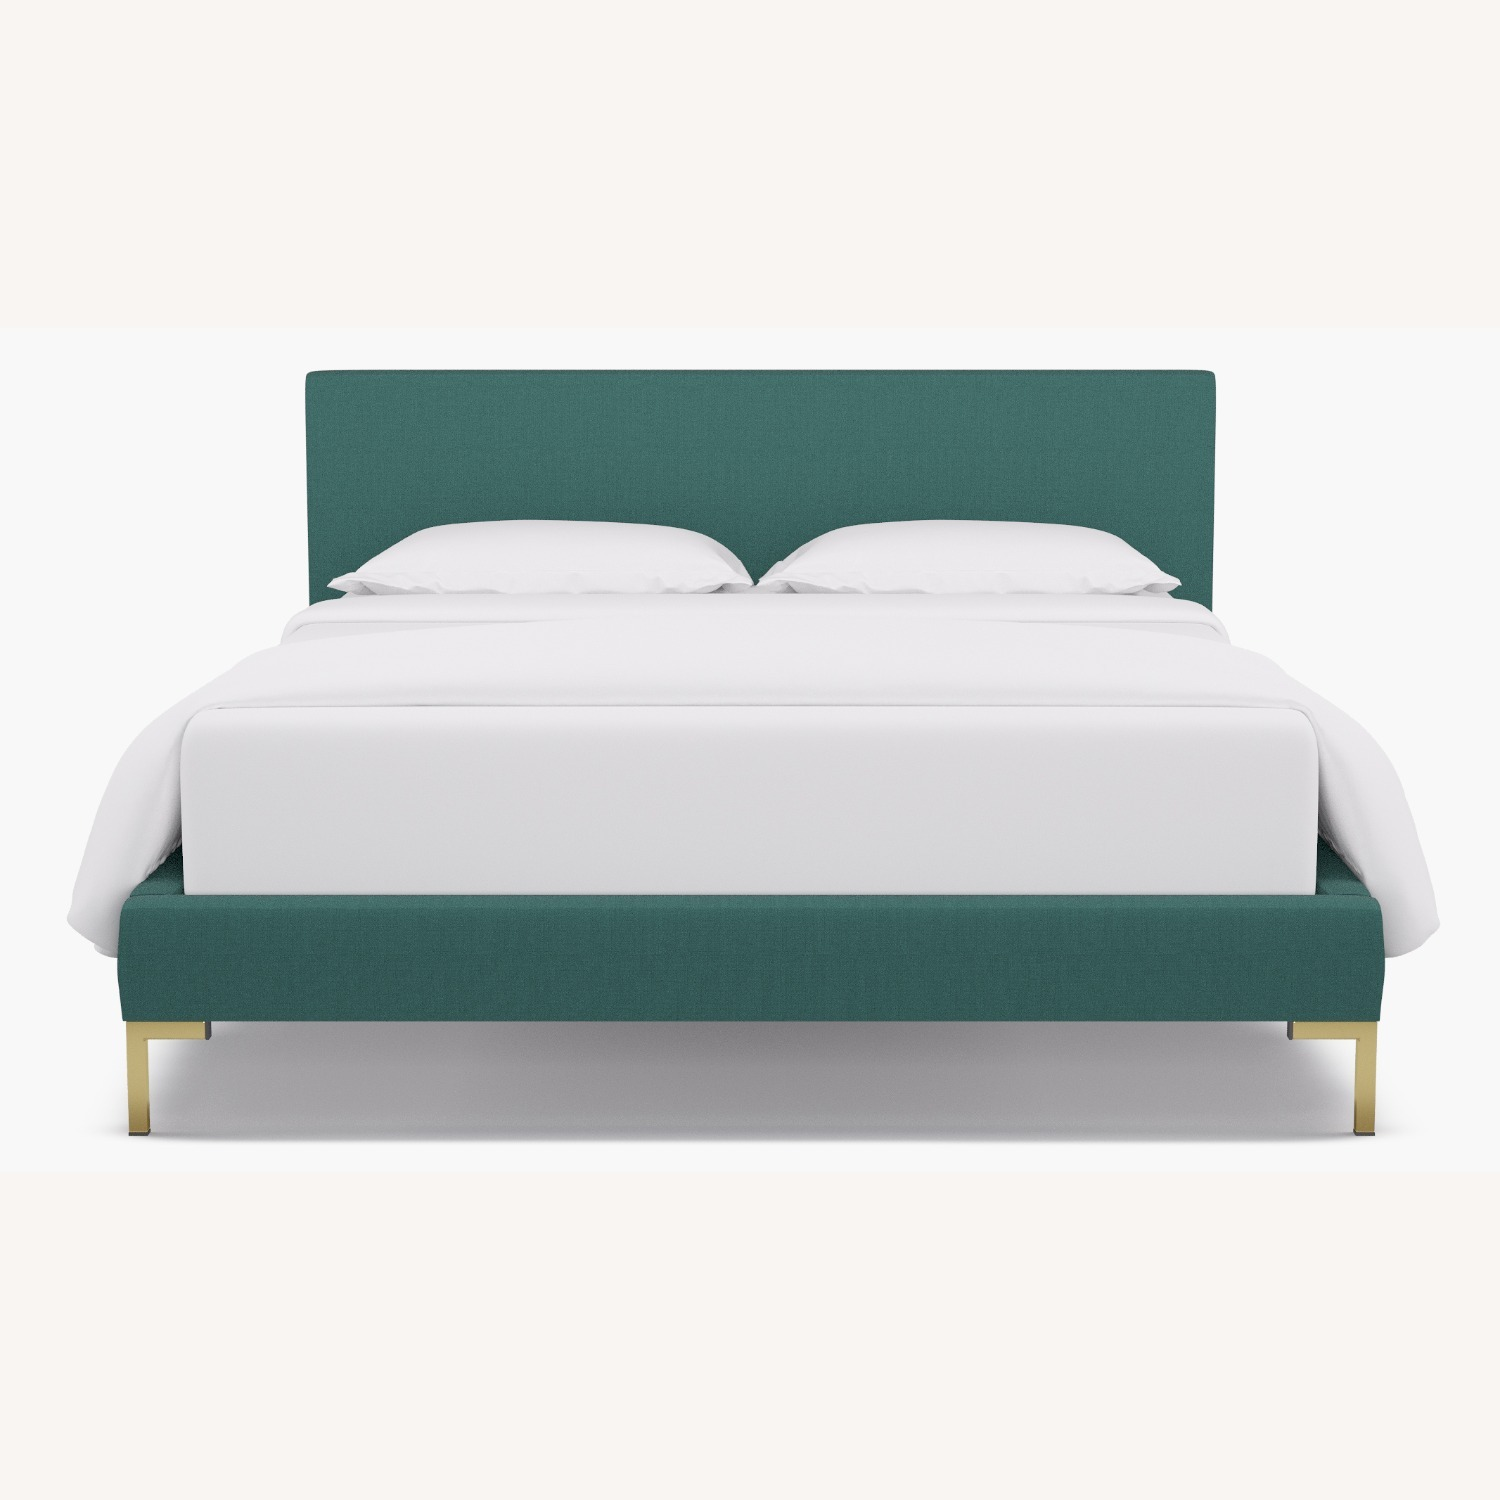 Modern Teal Green Bed - image-3